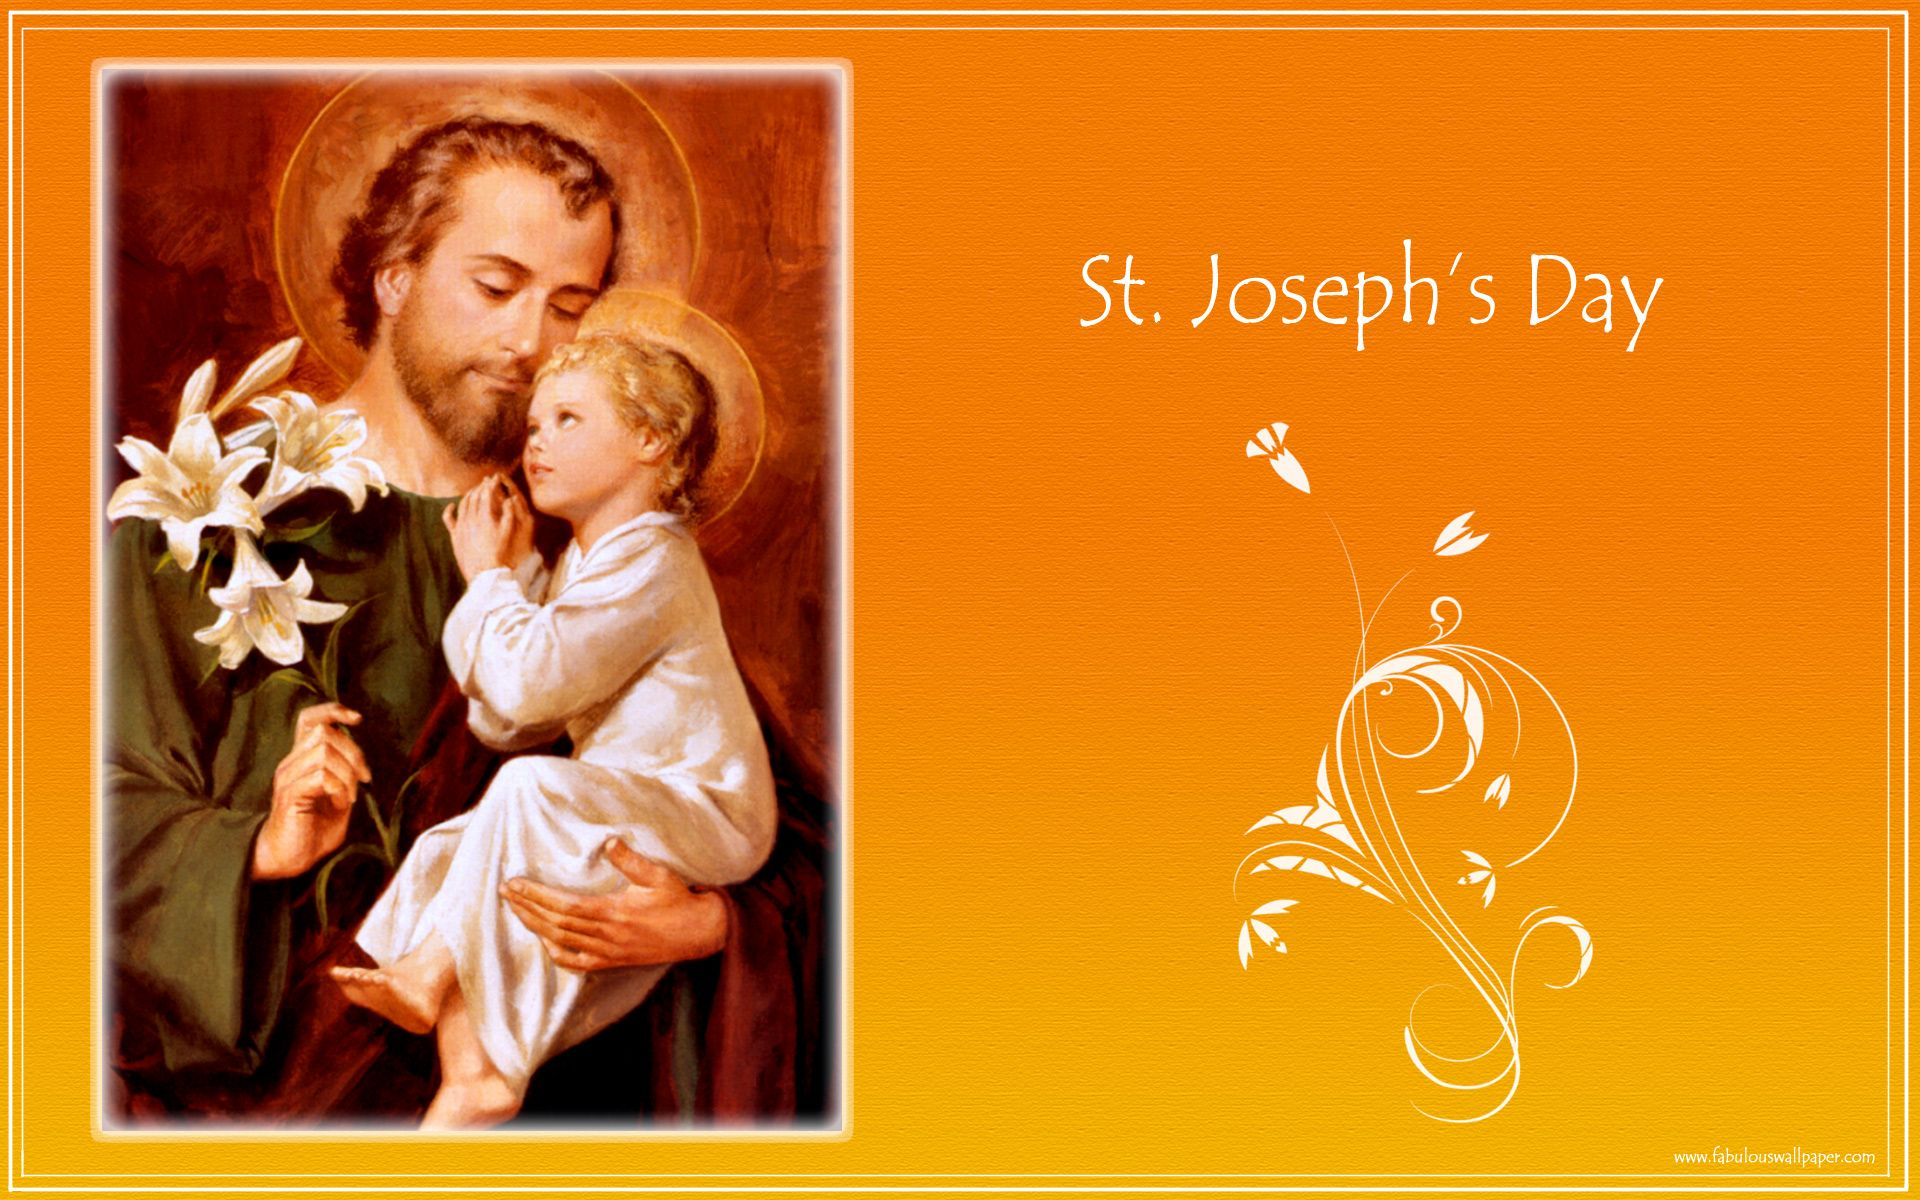 Free Photos of Saint Joseph,  Free computer desktop wallpaper, free holiday backgrounds, holiday wallpaper, happy holidays wallpaper, computer backgrounds, background wallpaper